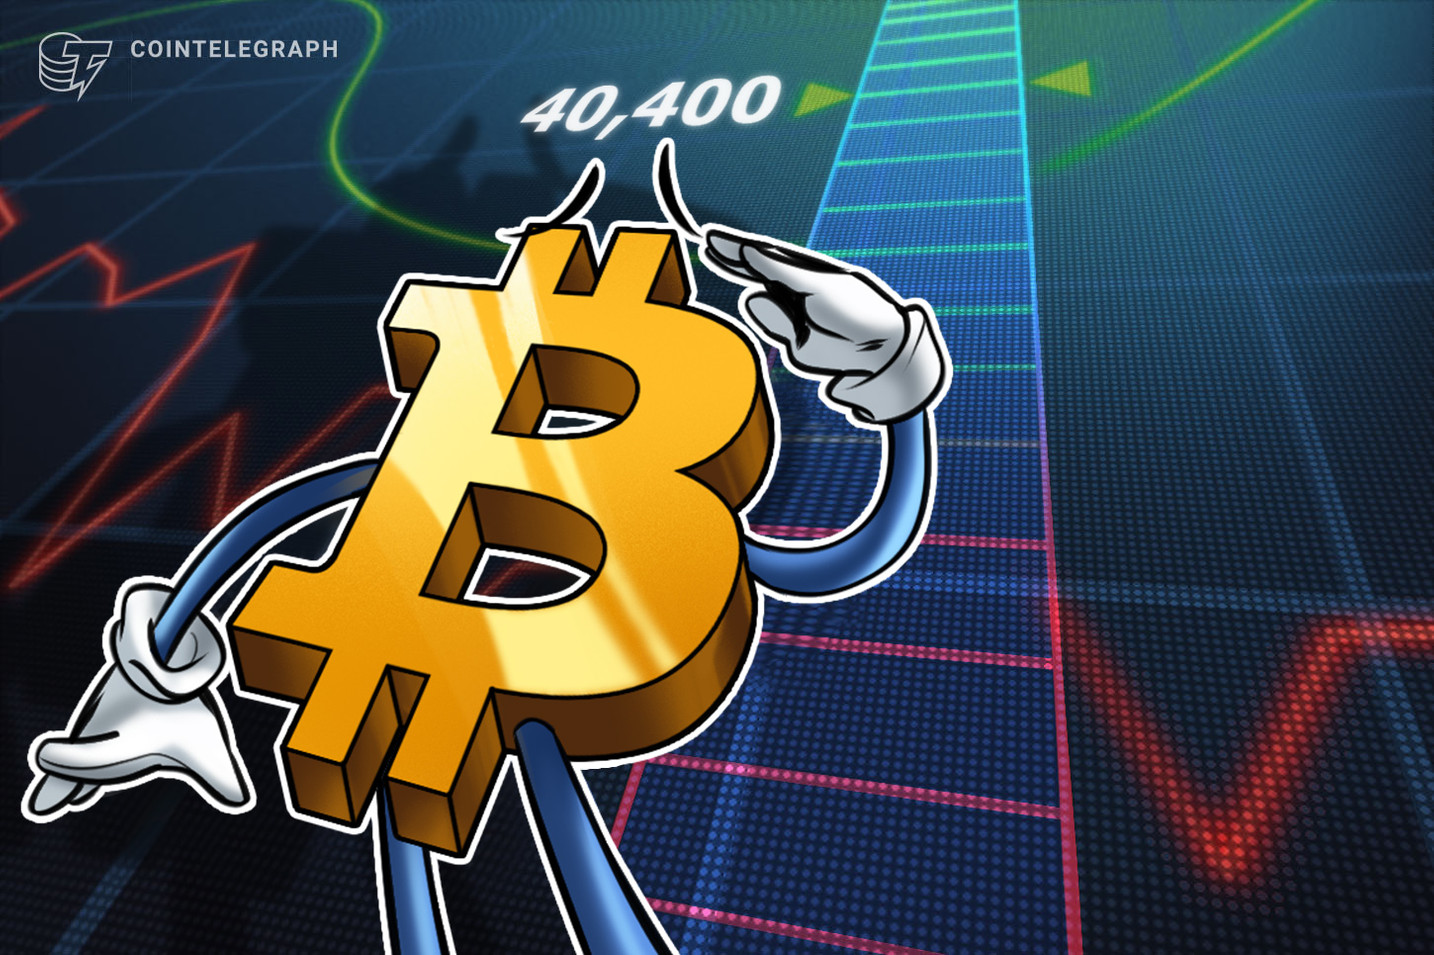 Analysts identify $40K as the make-or-break level for Bitcoin price